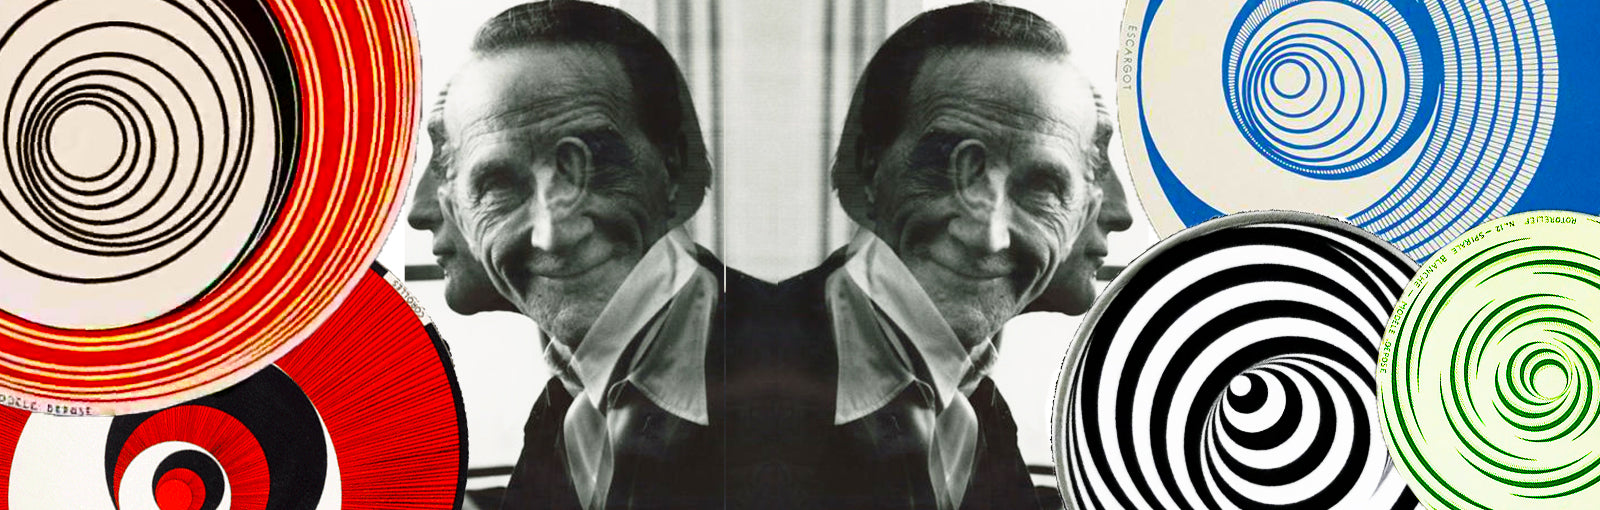 DUCHAMP: THE END OF ART HISTORY?